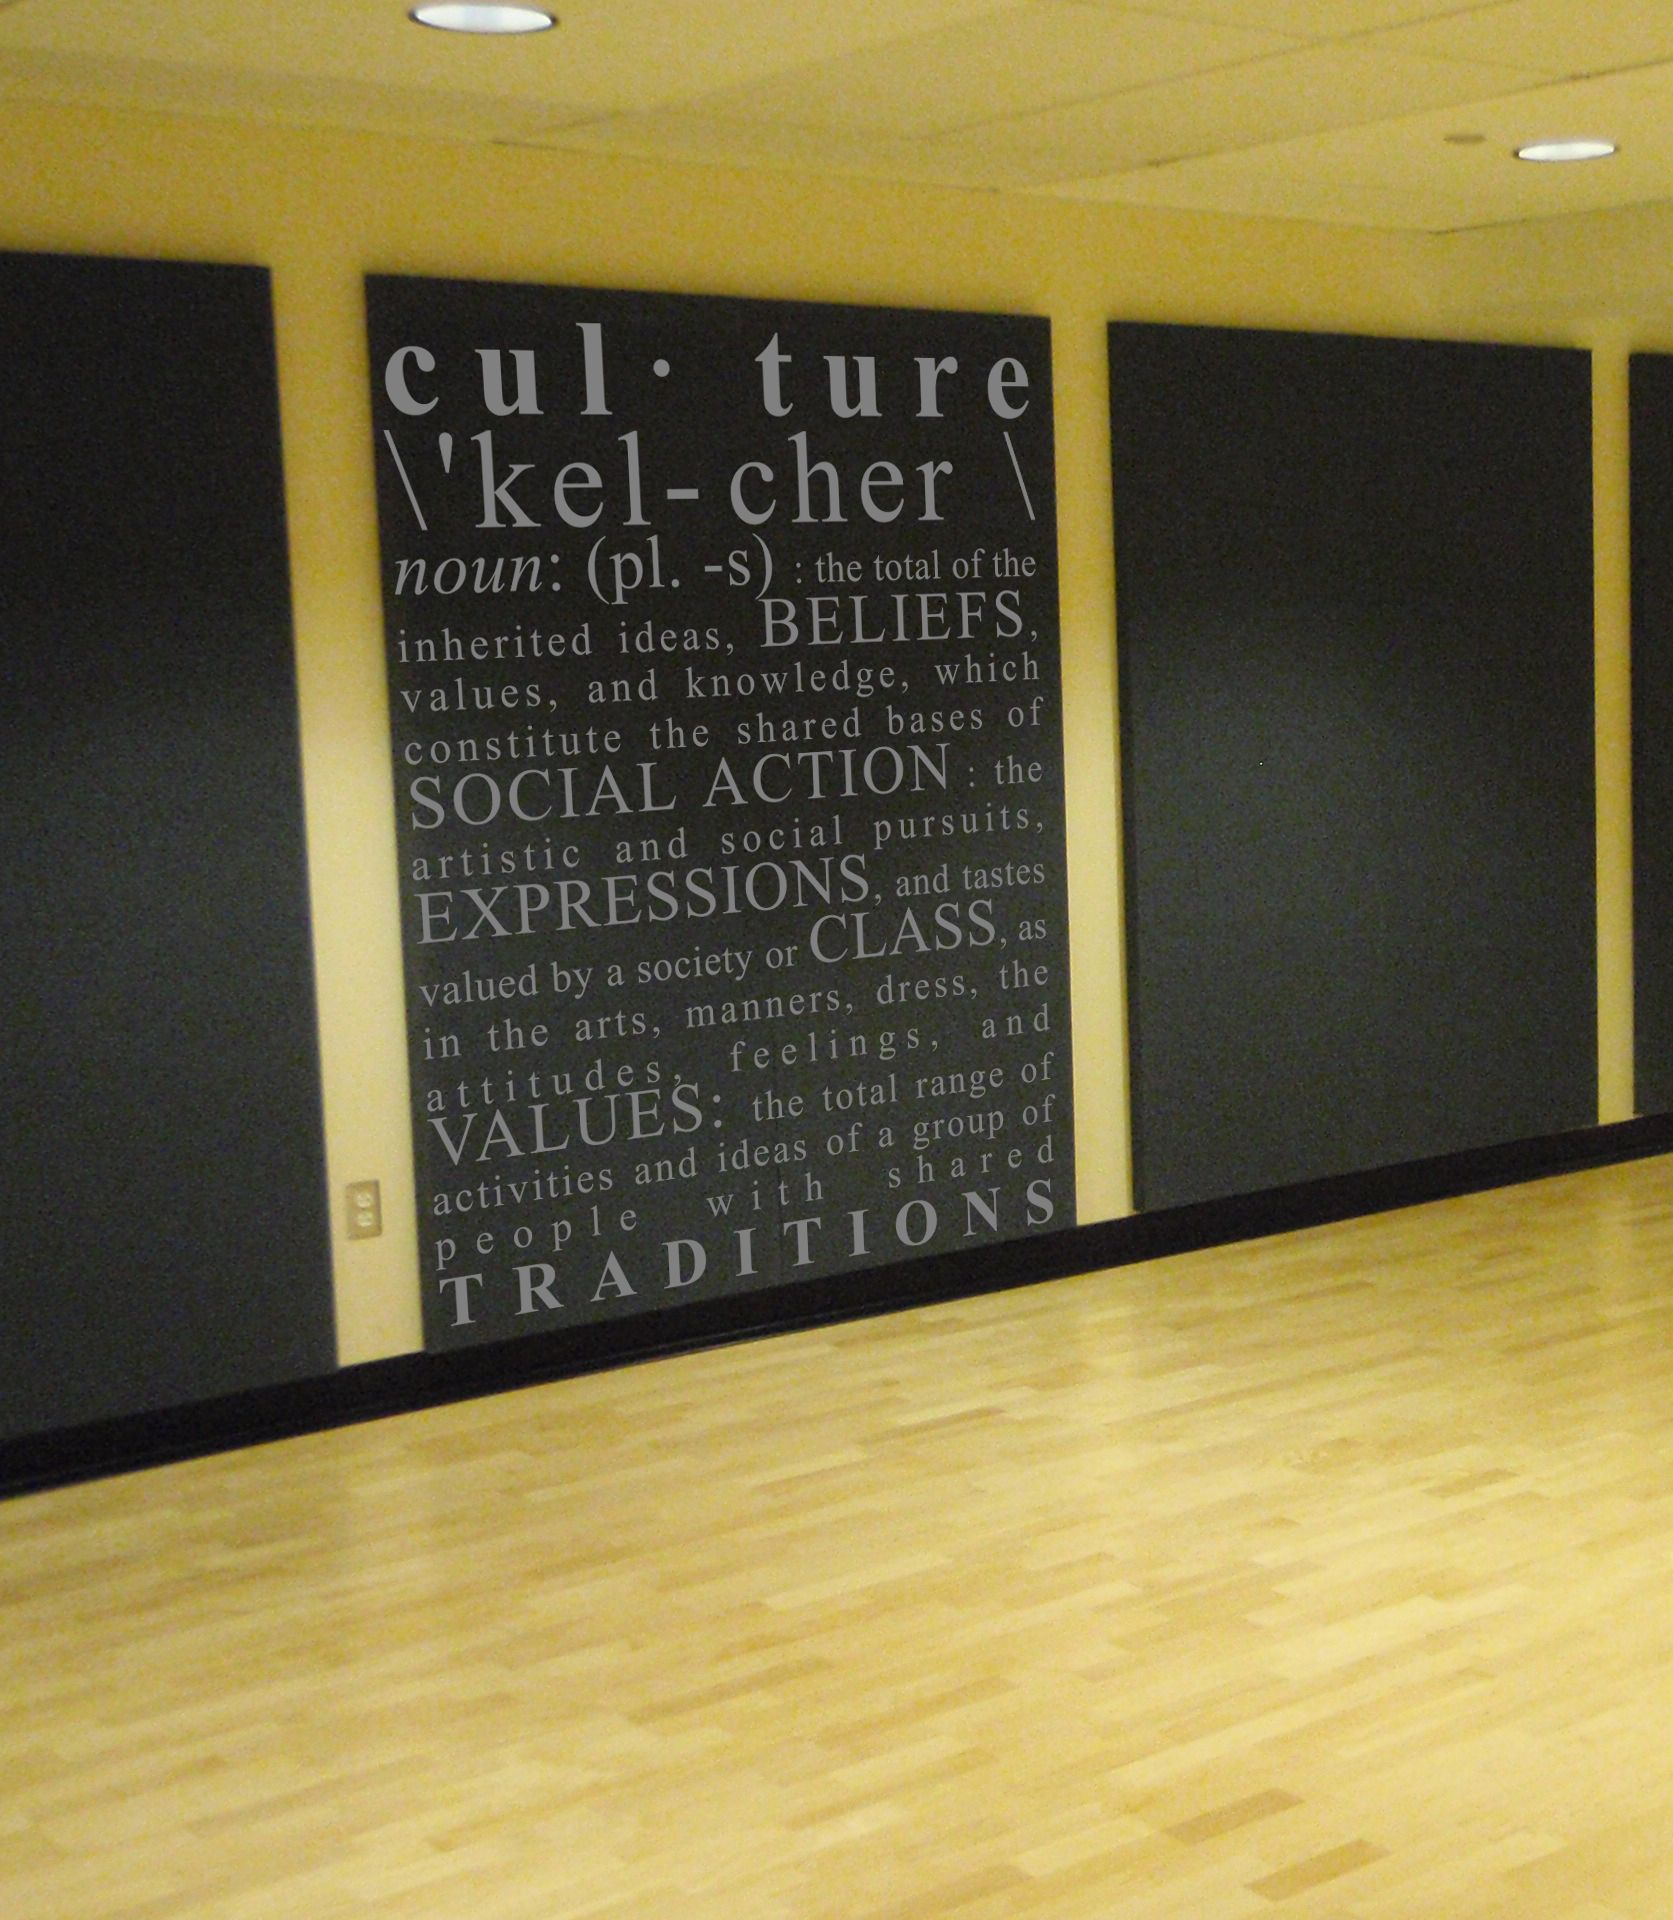 Culture Definition Wall Decal | Culture definition, Wall decals and ...